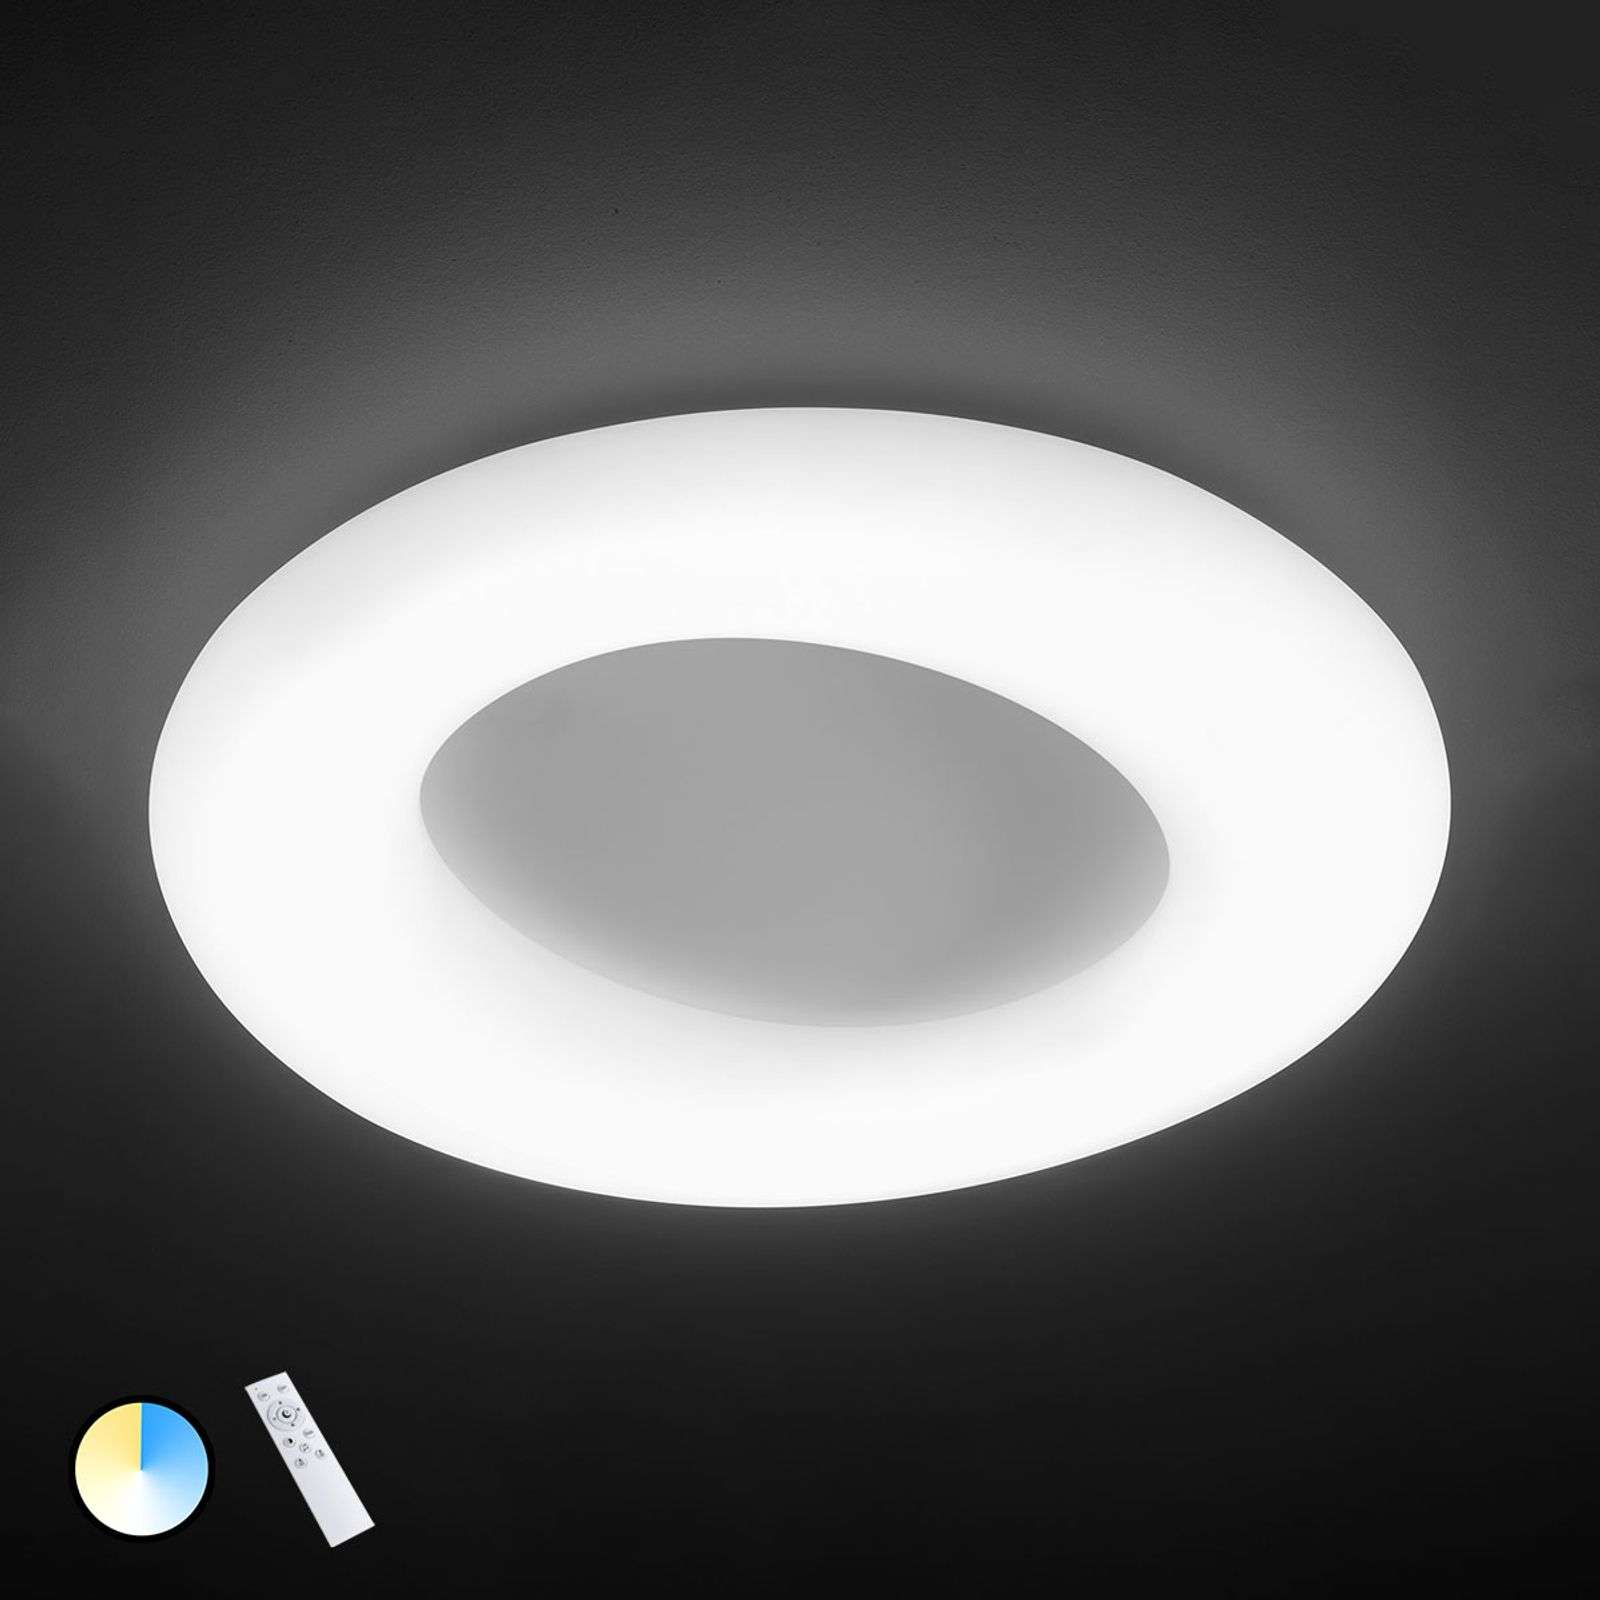 Lámpara LED de techo County ajustable, Ø 75 cm